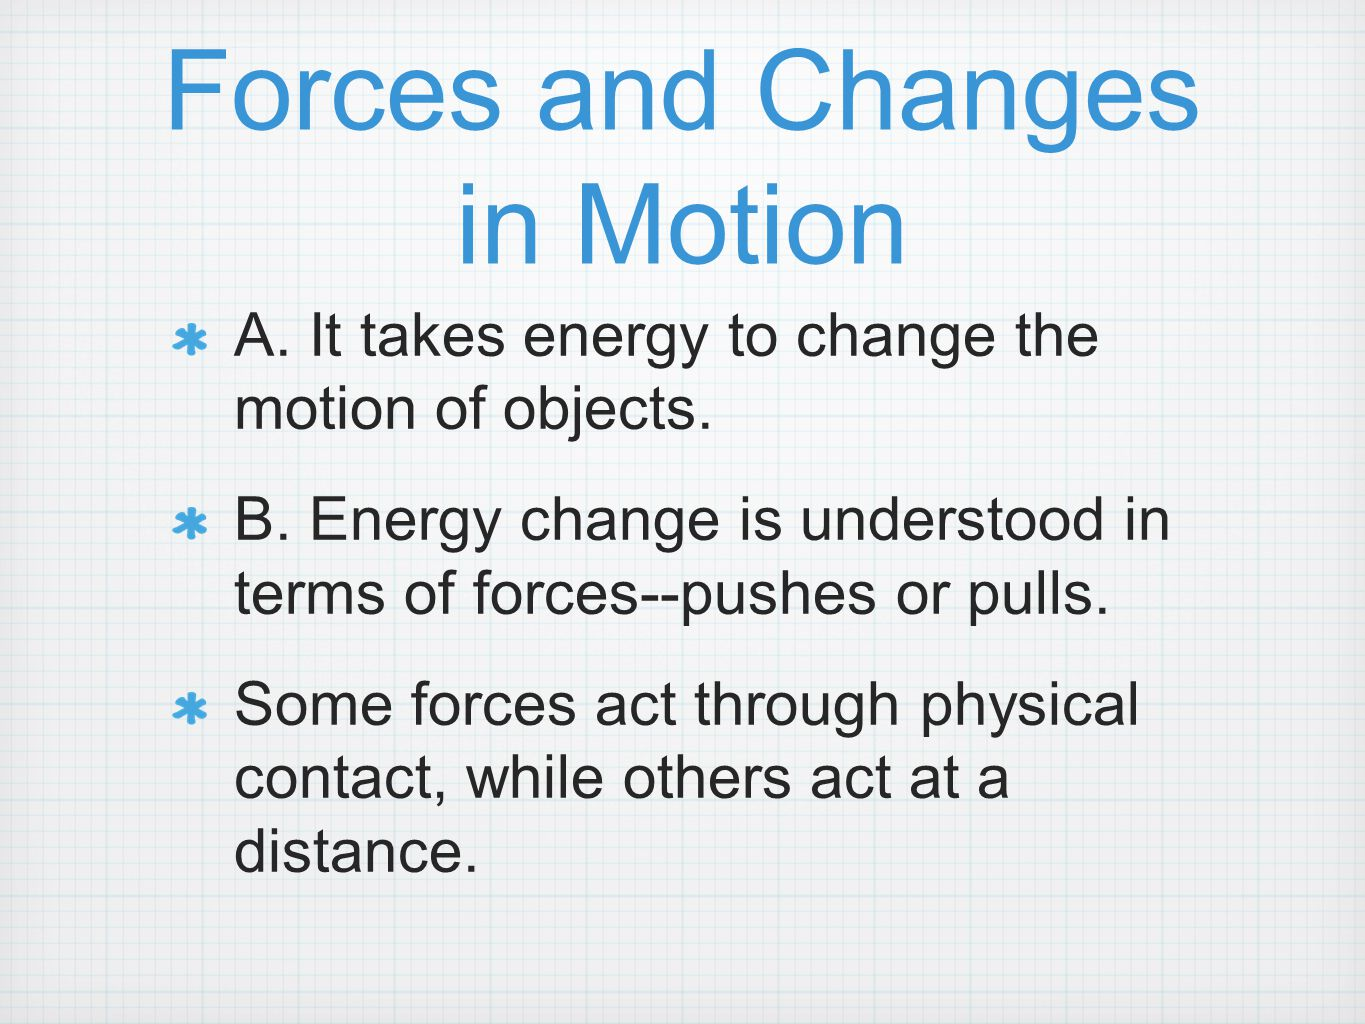 Forces and Changes in Motion A. It takes energy to change the motion of objects. B. Energy change is understood in terms of forces--pushes or pulls. S